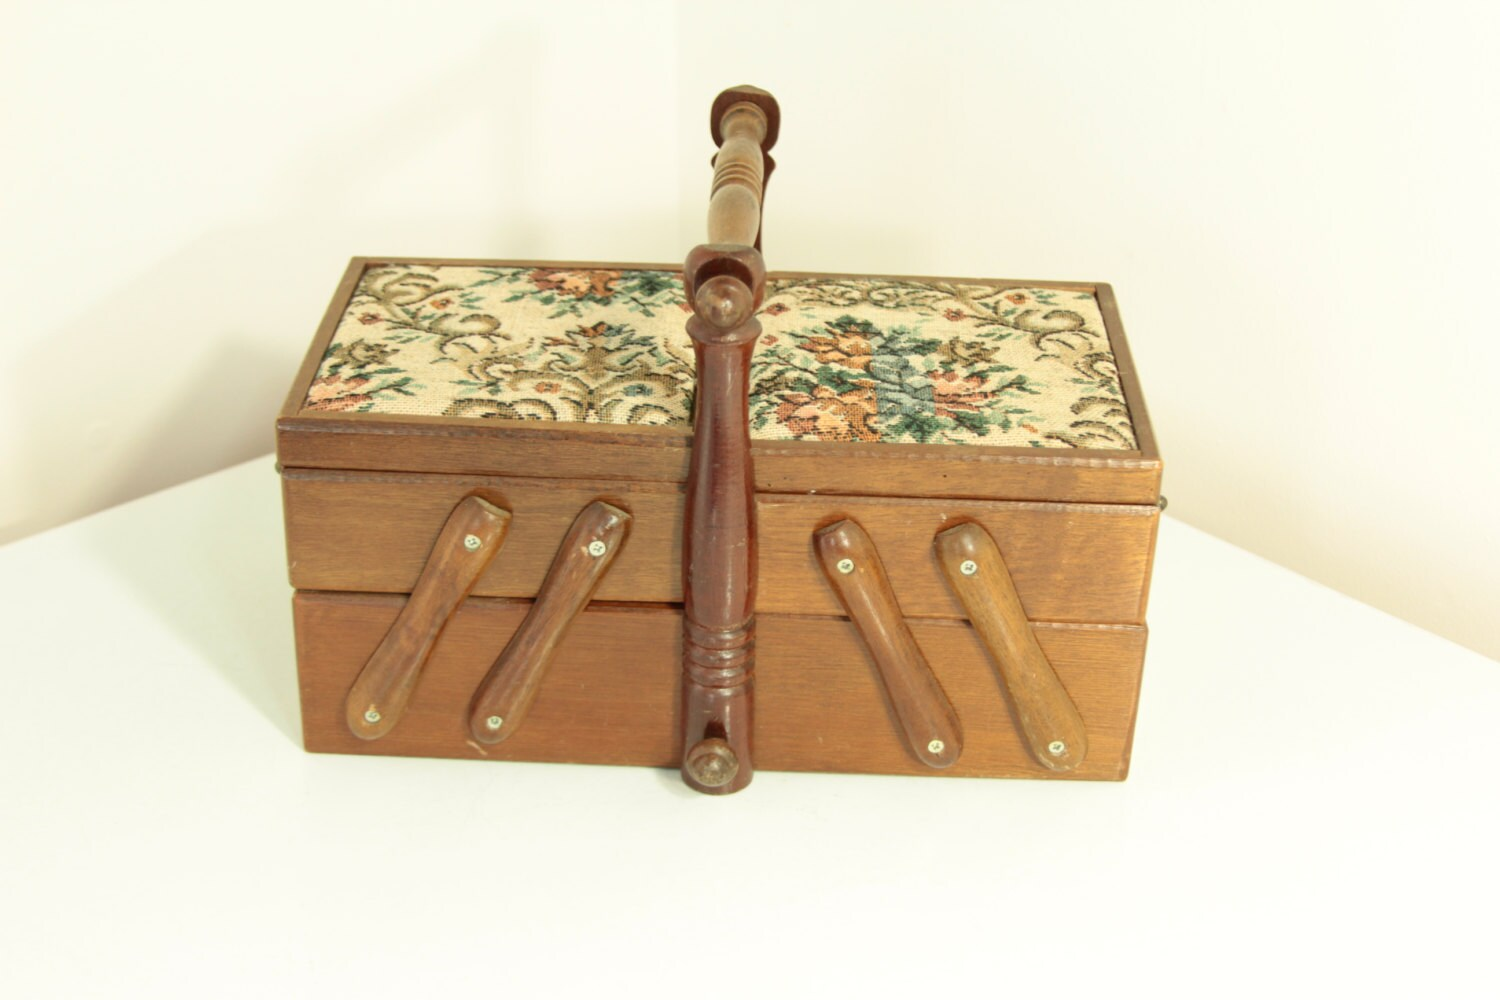 Vintage Wooden Accordion Sewing Box With Tapestry Top